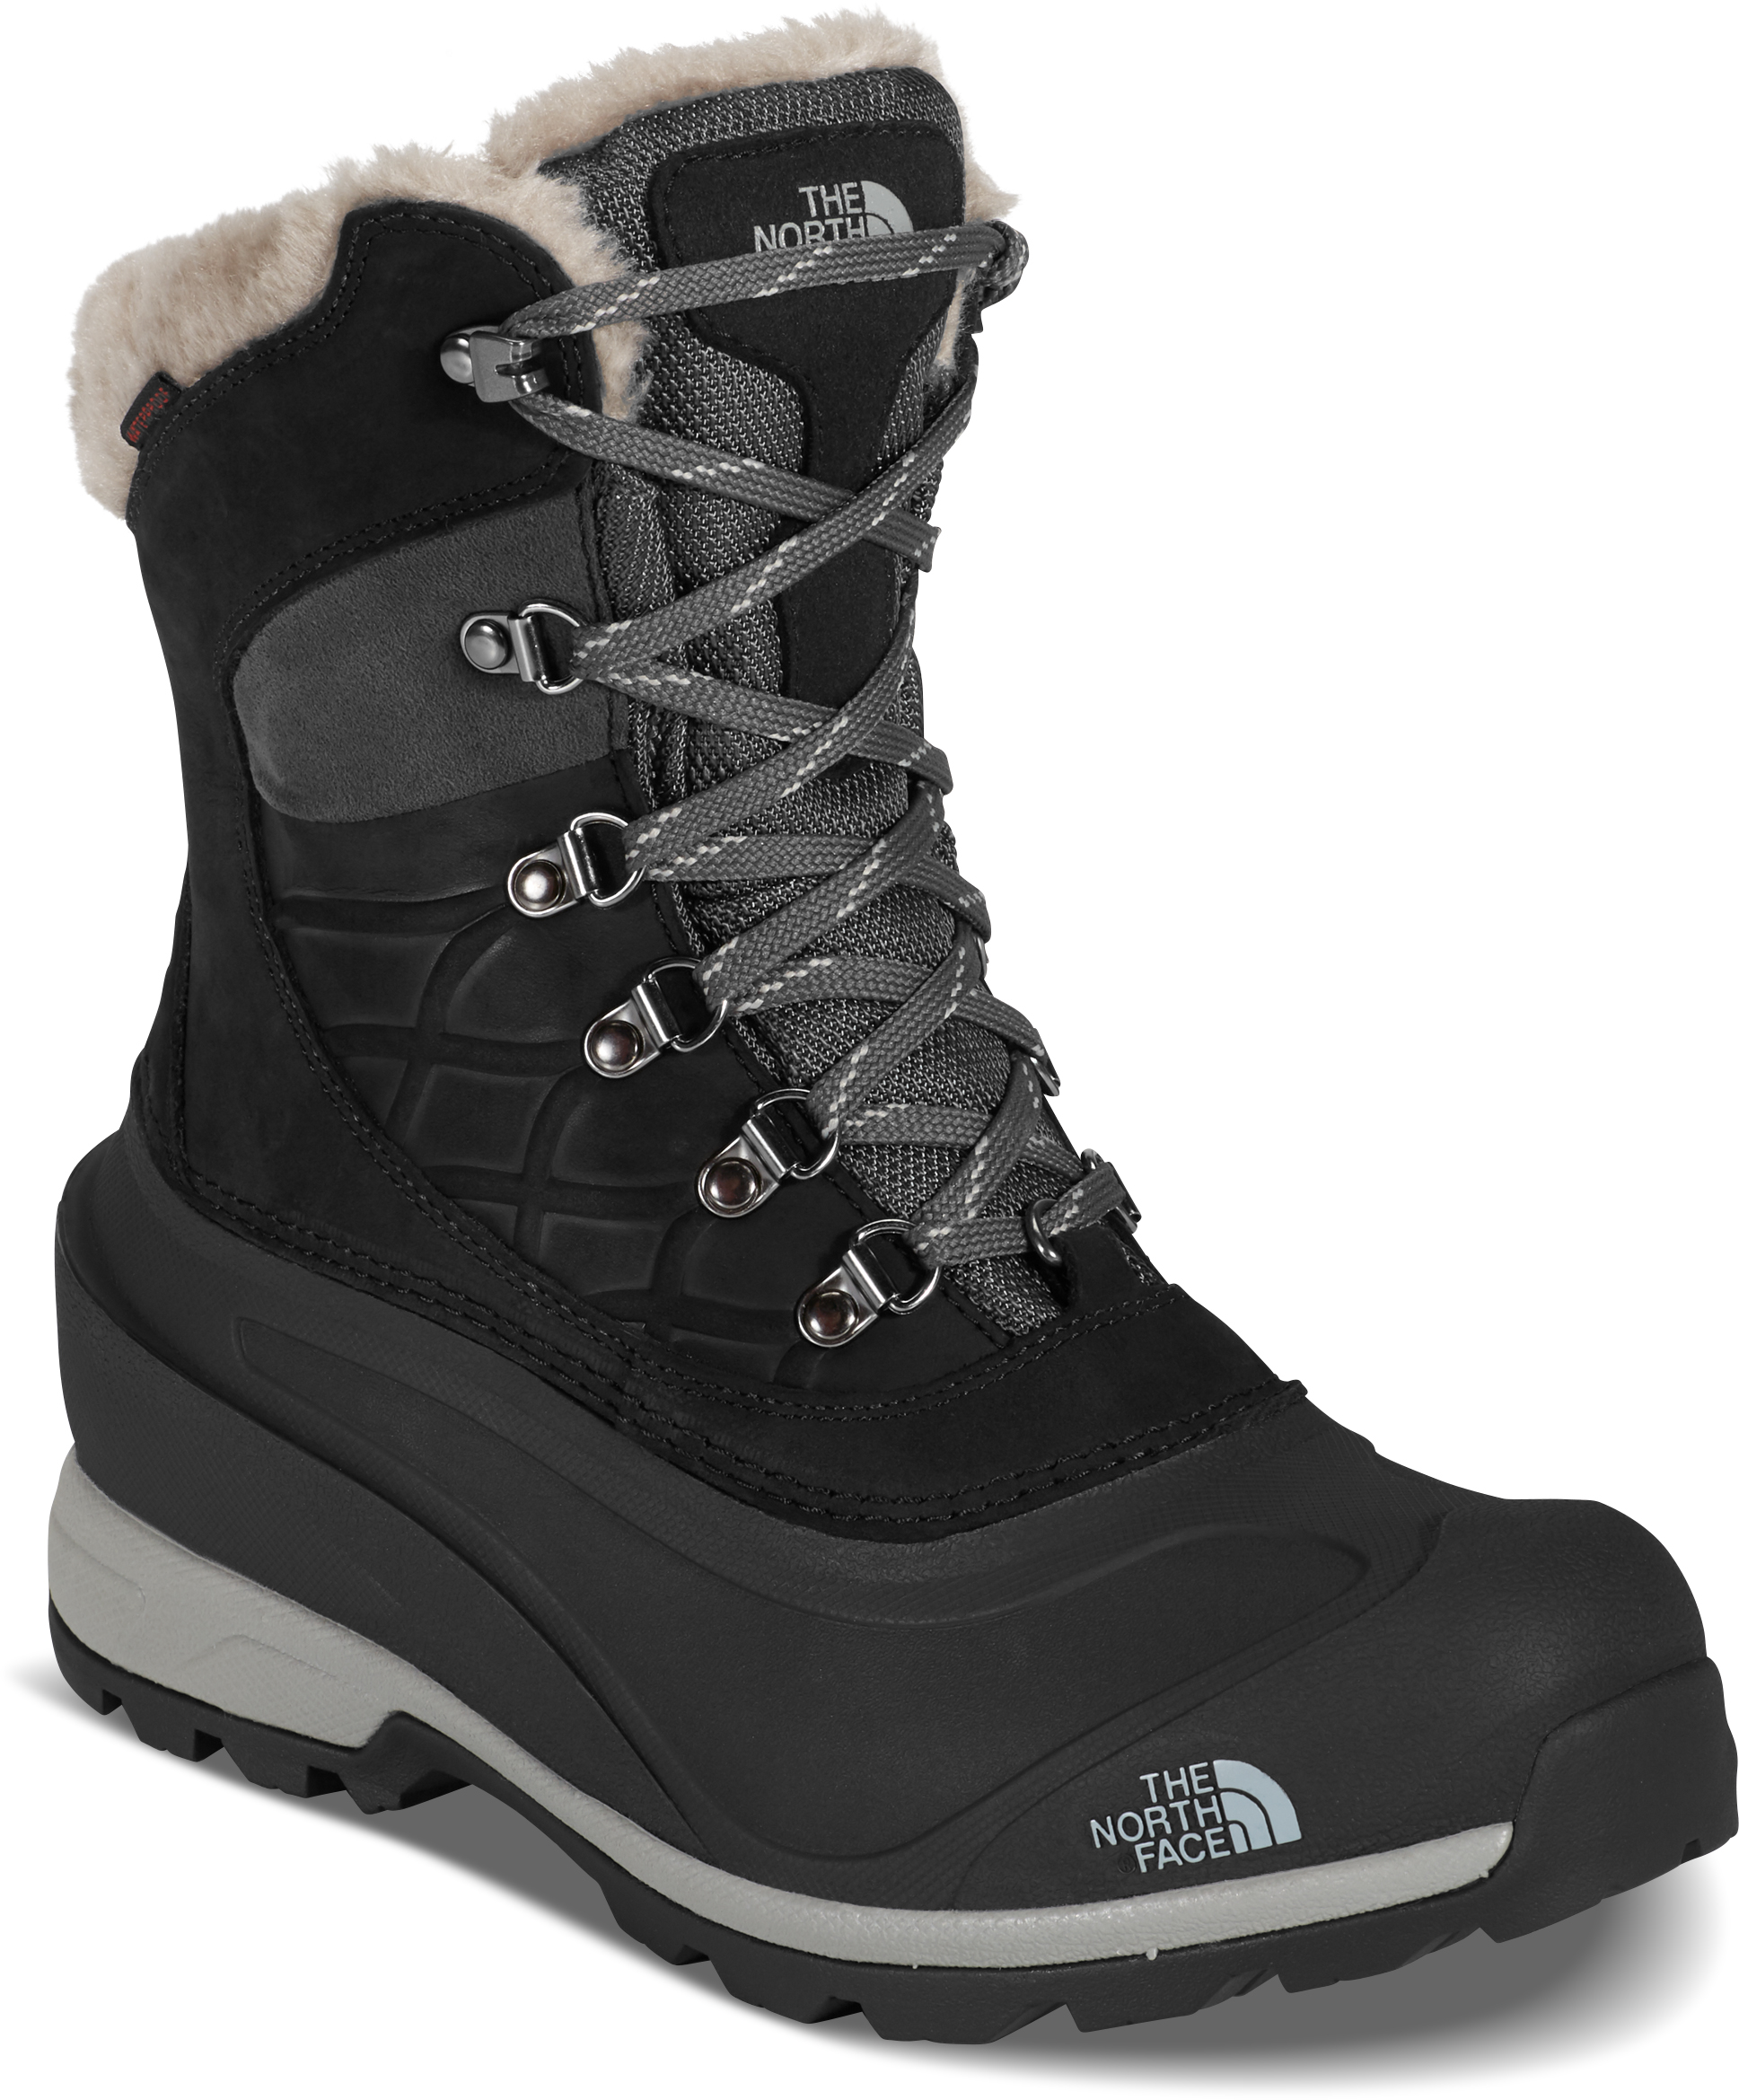 The North Face Chilkat 400 Winter Boots - Women s 4af79f21822e